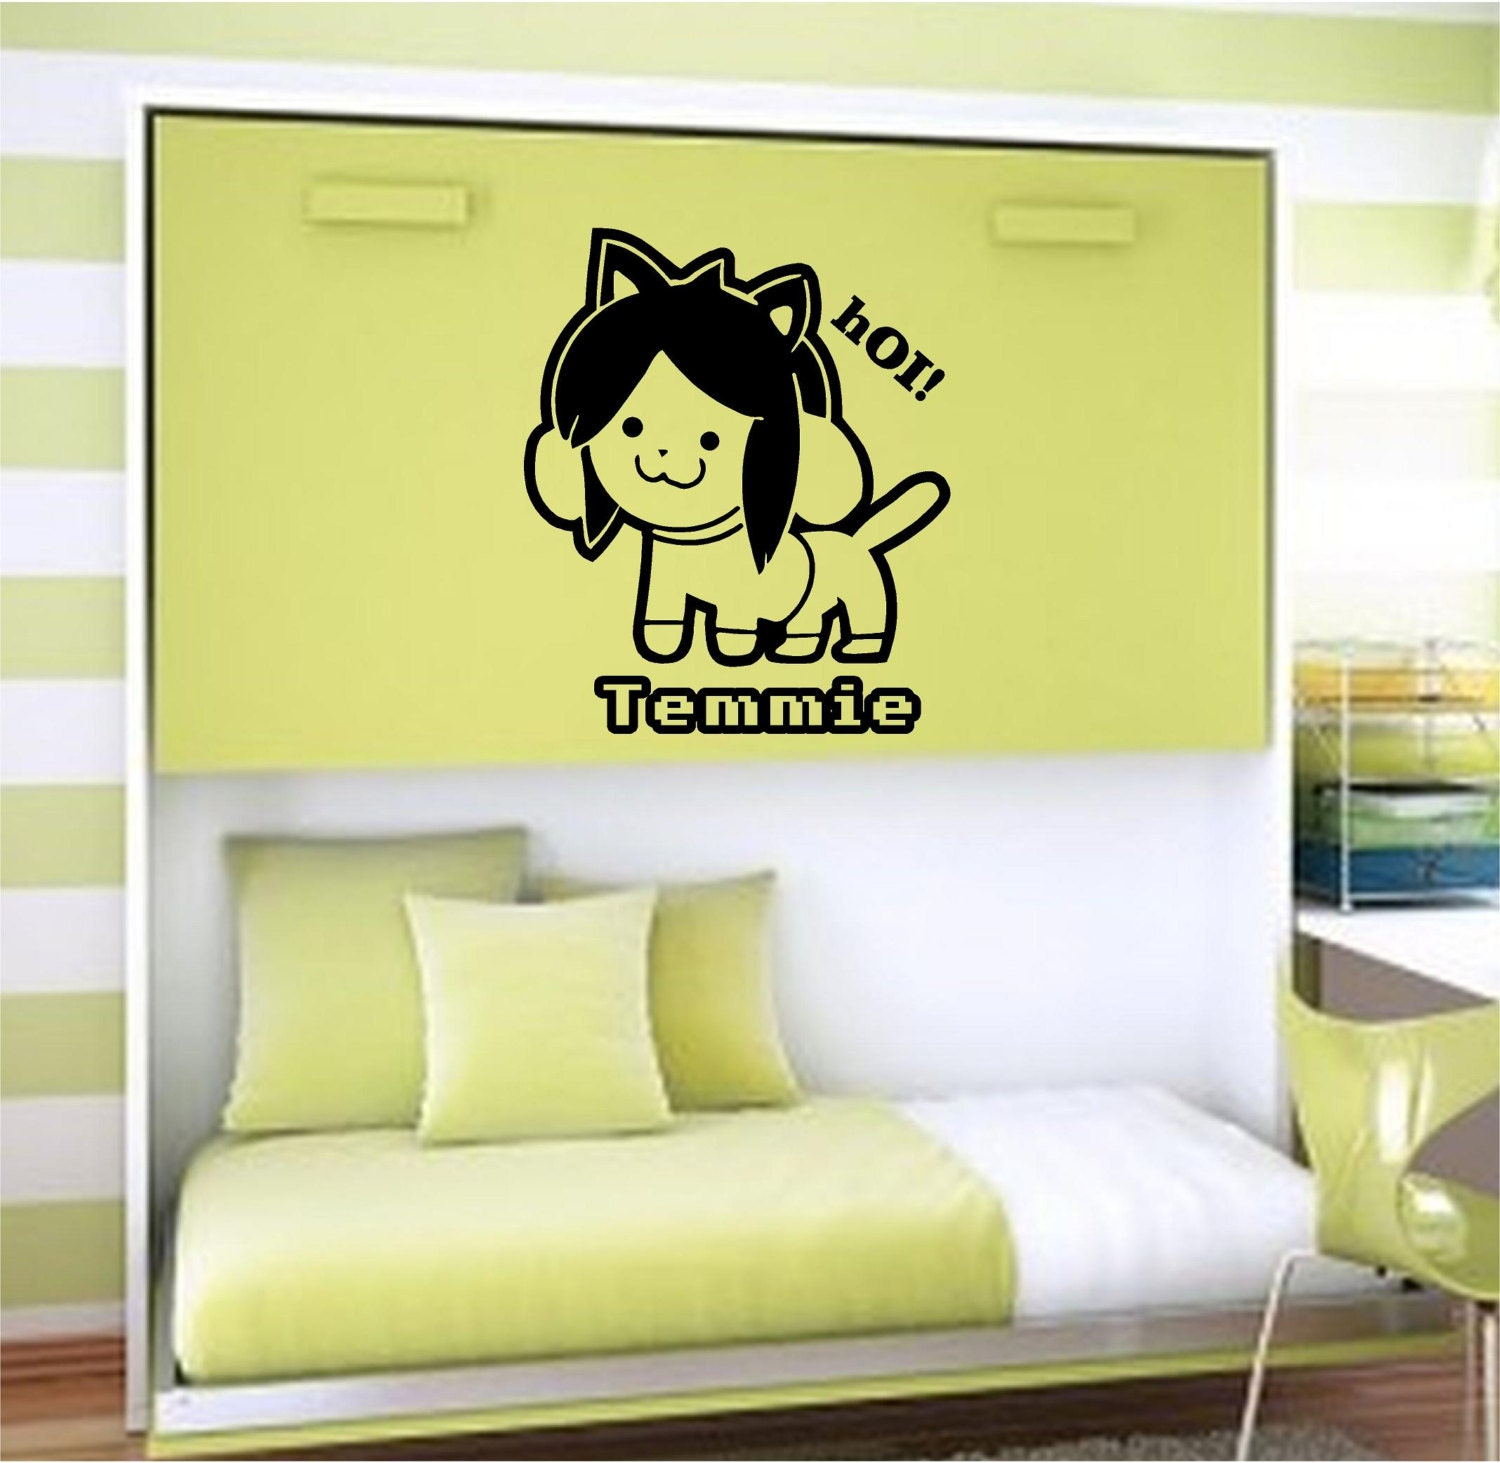 Wall Decal Window Decal Car Decals... Undertale. Temmie.